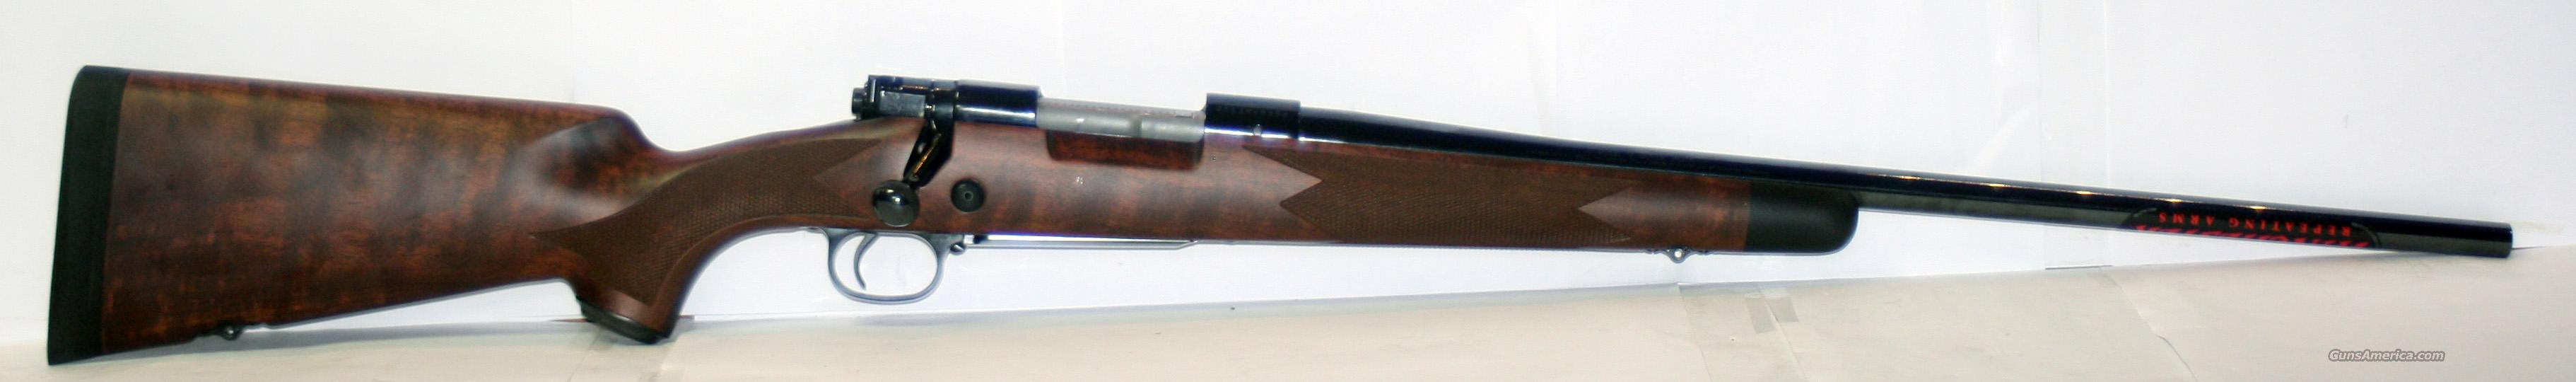 WINCHESTER MODEL 70 SUPER GRADE 308 WIN NEW IN BOX LIMITED CURRENT EDITION  Guns > Rifles > Winchester Rifles - Modern Bolt/Auto/Single > Model 70 > Post-64